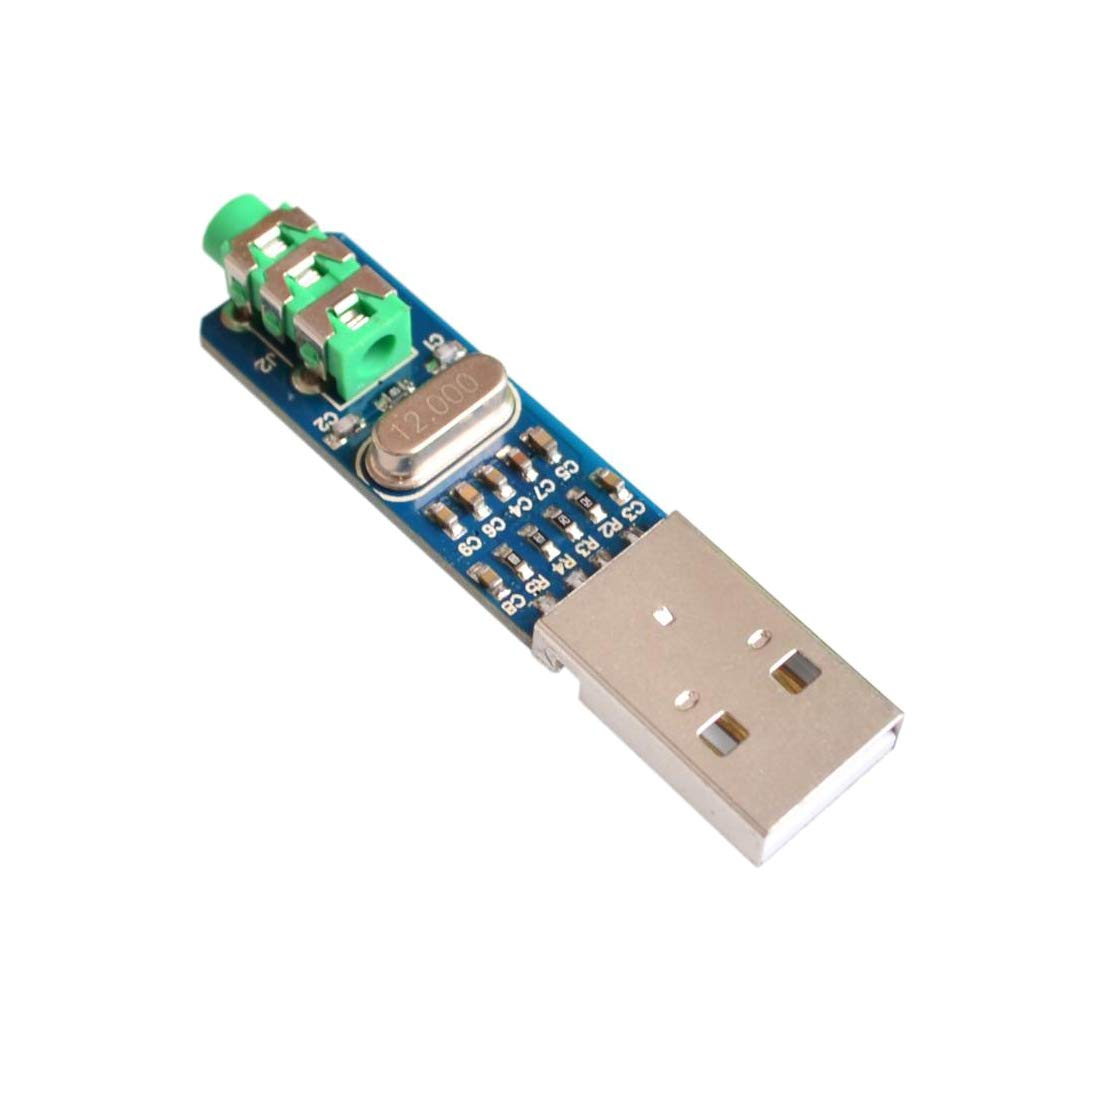 HiLetgo 5V PCM2704 Sound Card Decoding Module DAC Decoder Board for PC Computer USB Powered